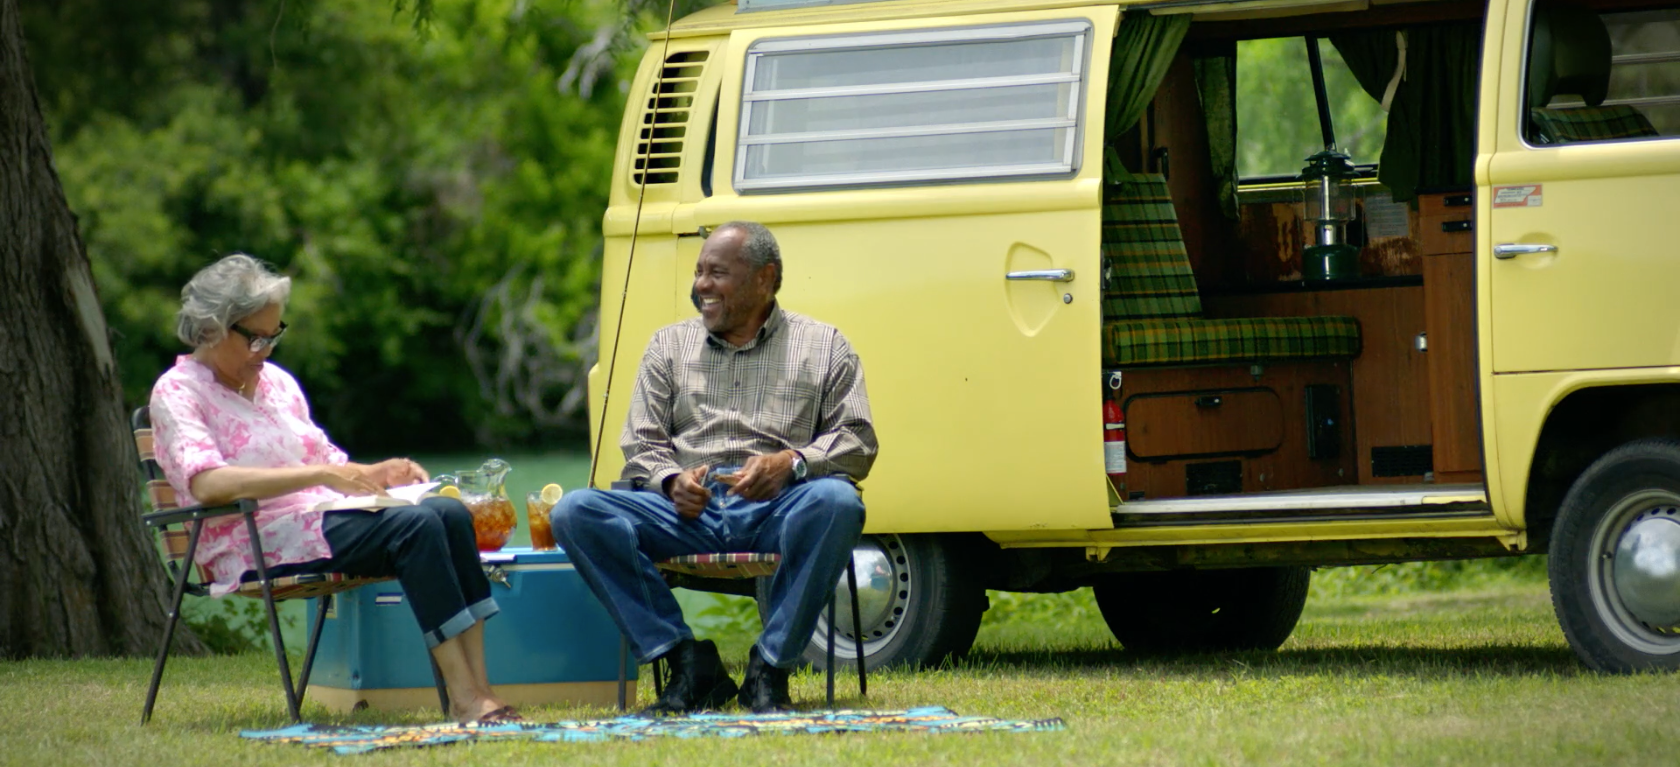 VALERO: EVERY MILE - Commercial Series